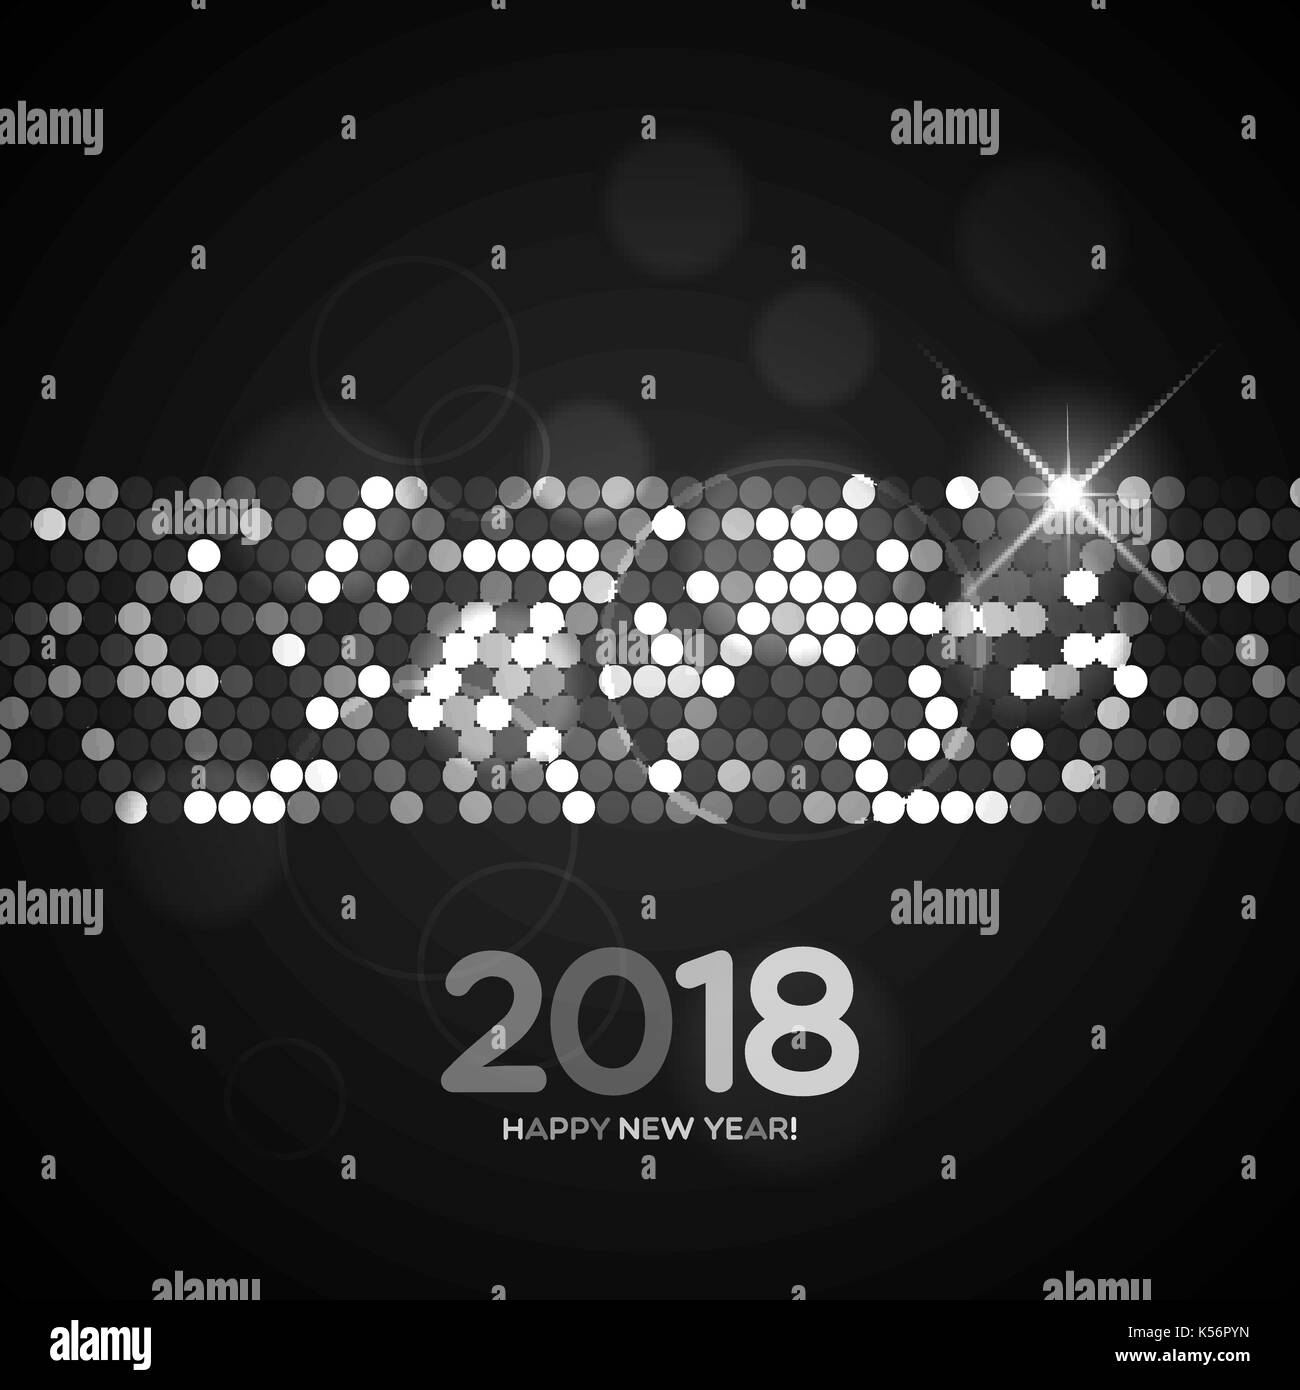 happy new year 2018 black and white shimmer background made of abstract spangles for your greeting card design